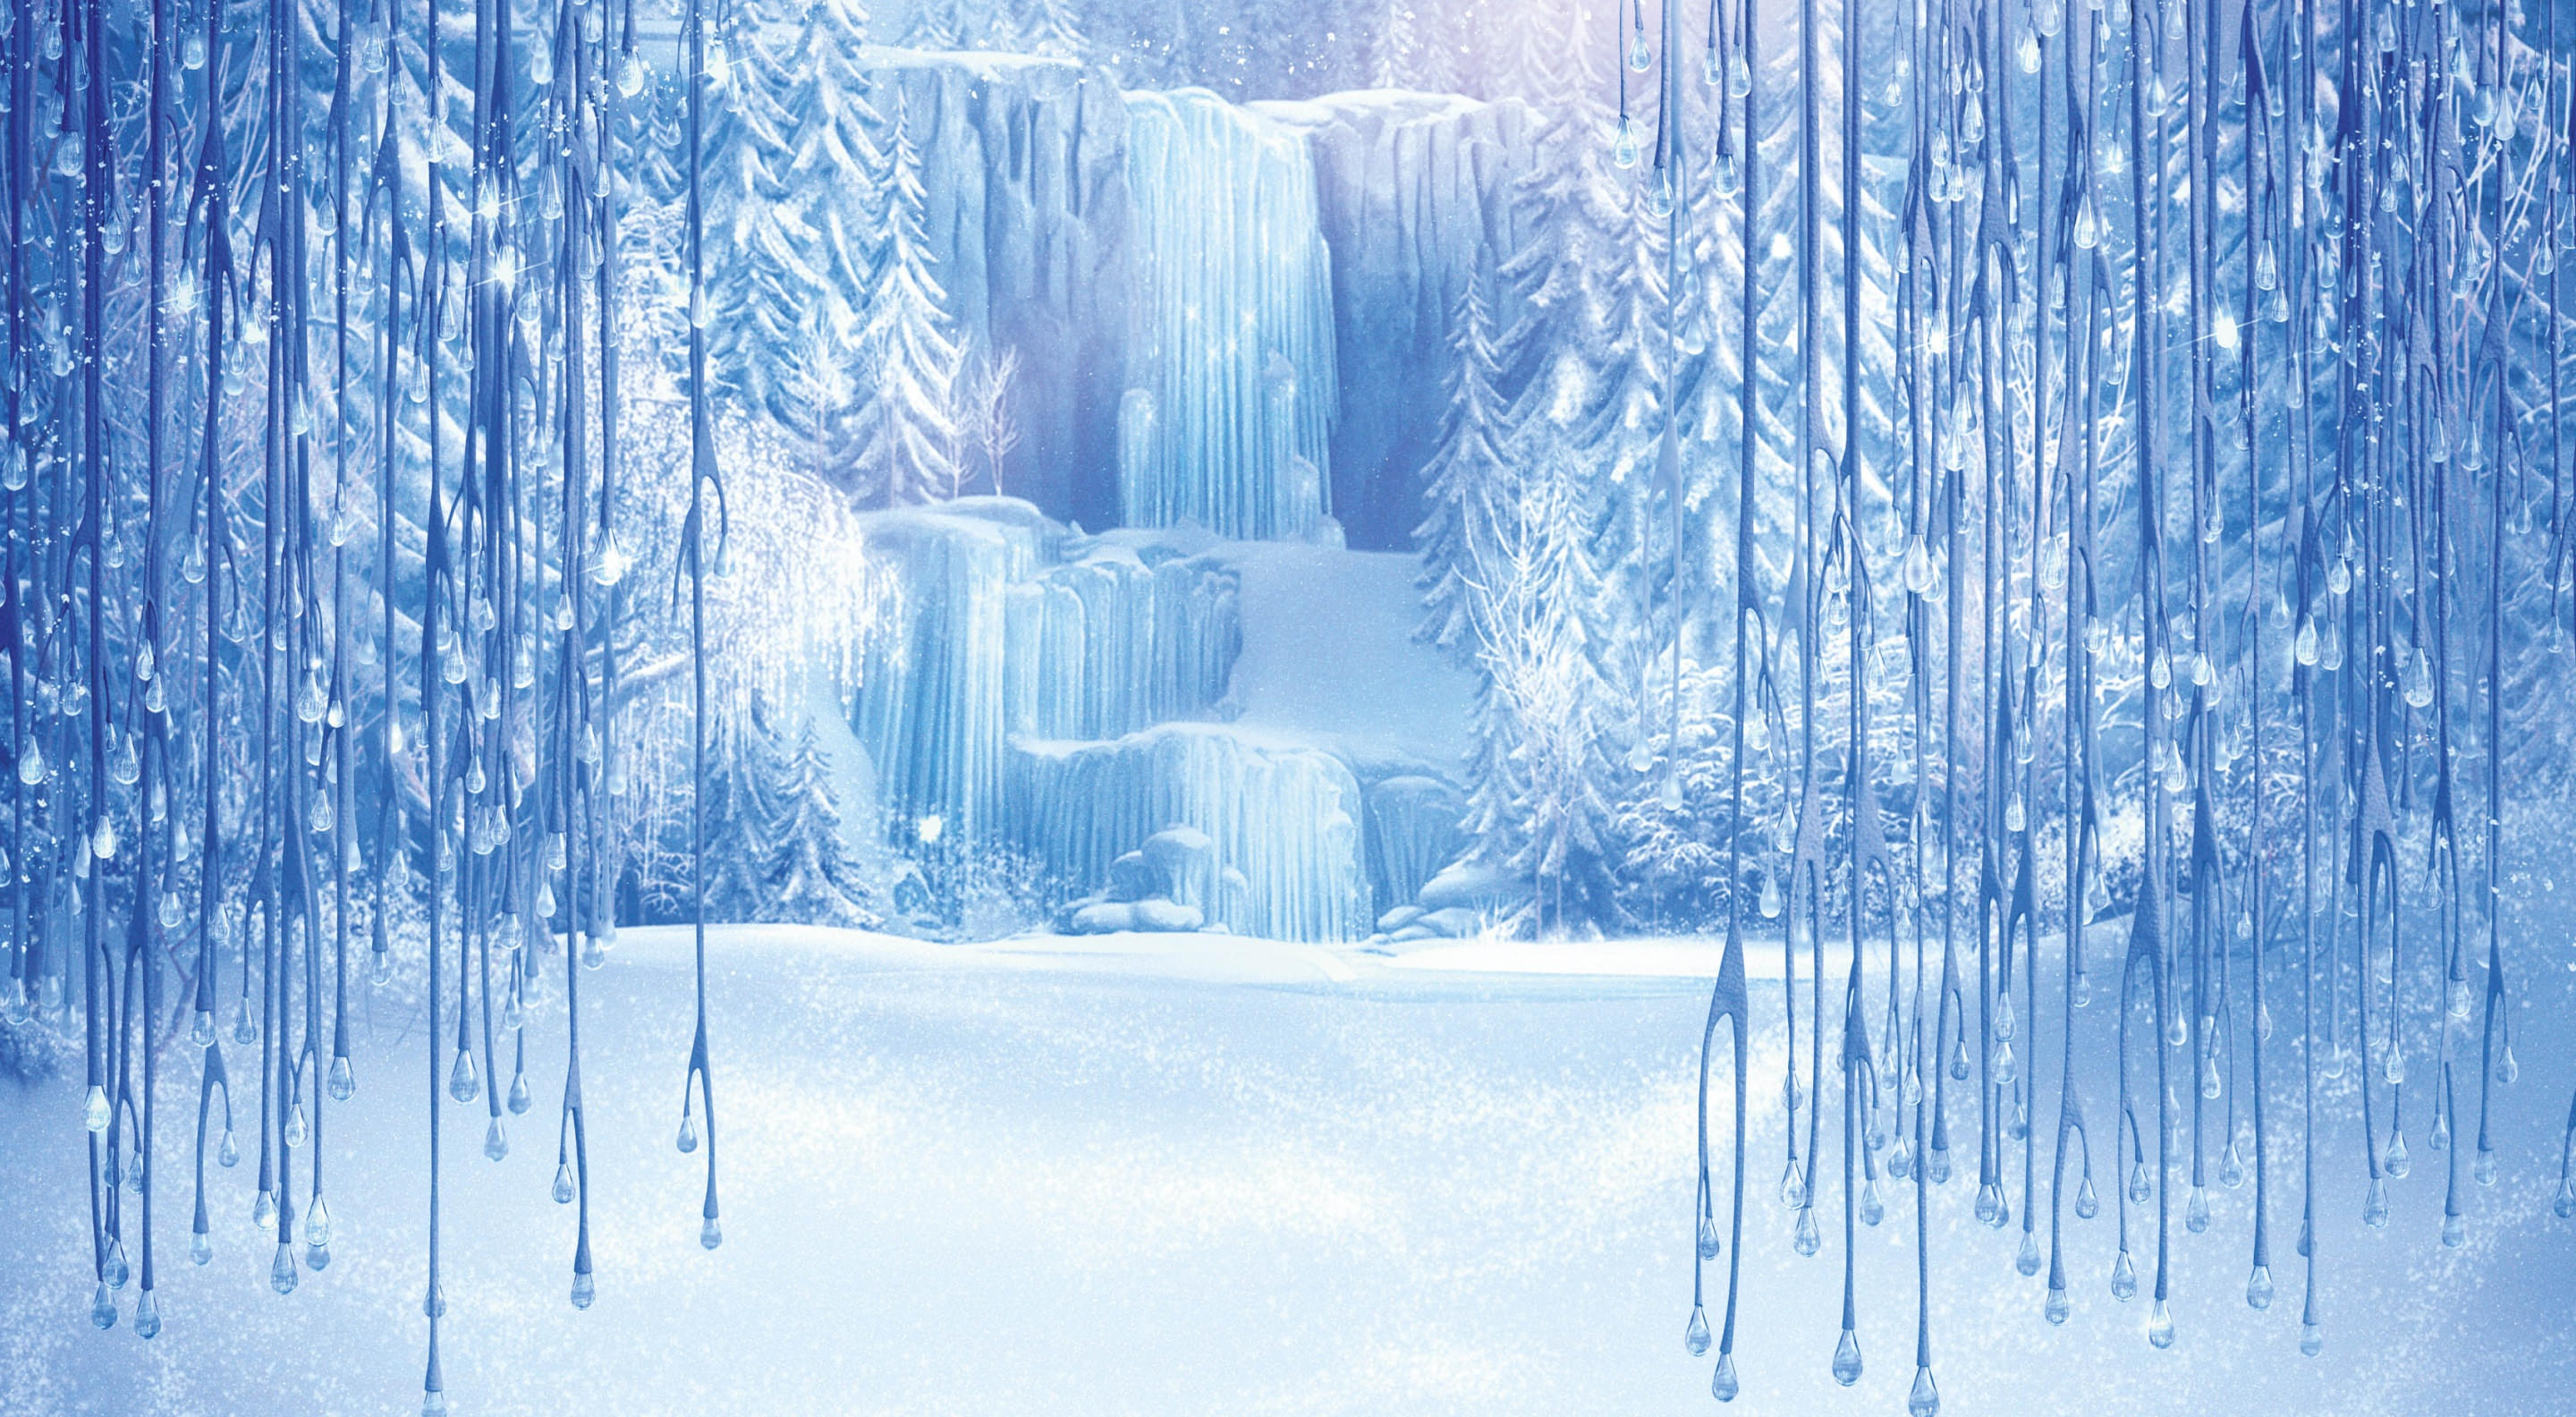 Icefall, frozen powerpoint background #2746